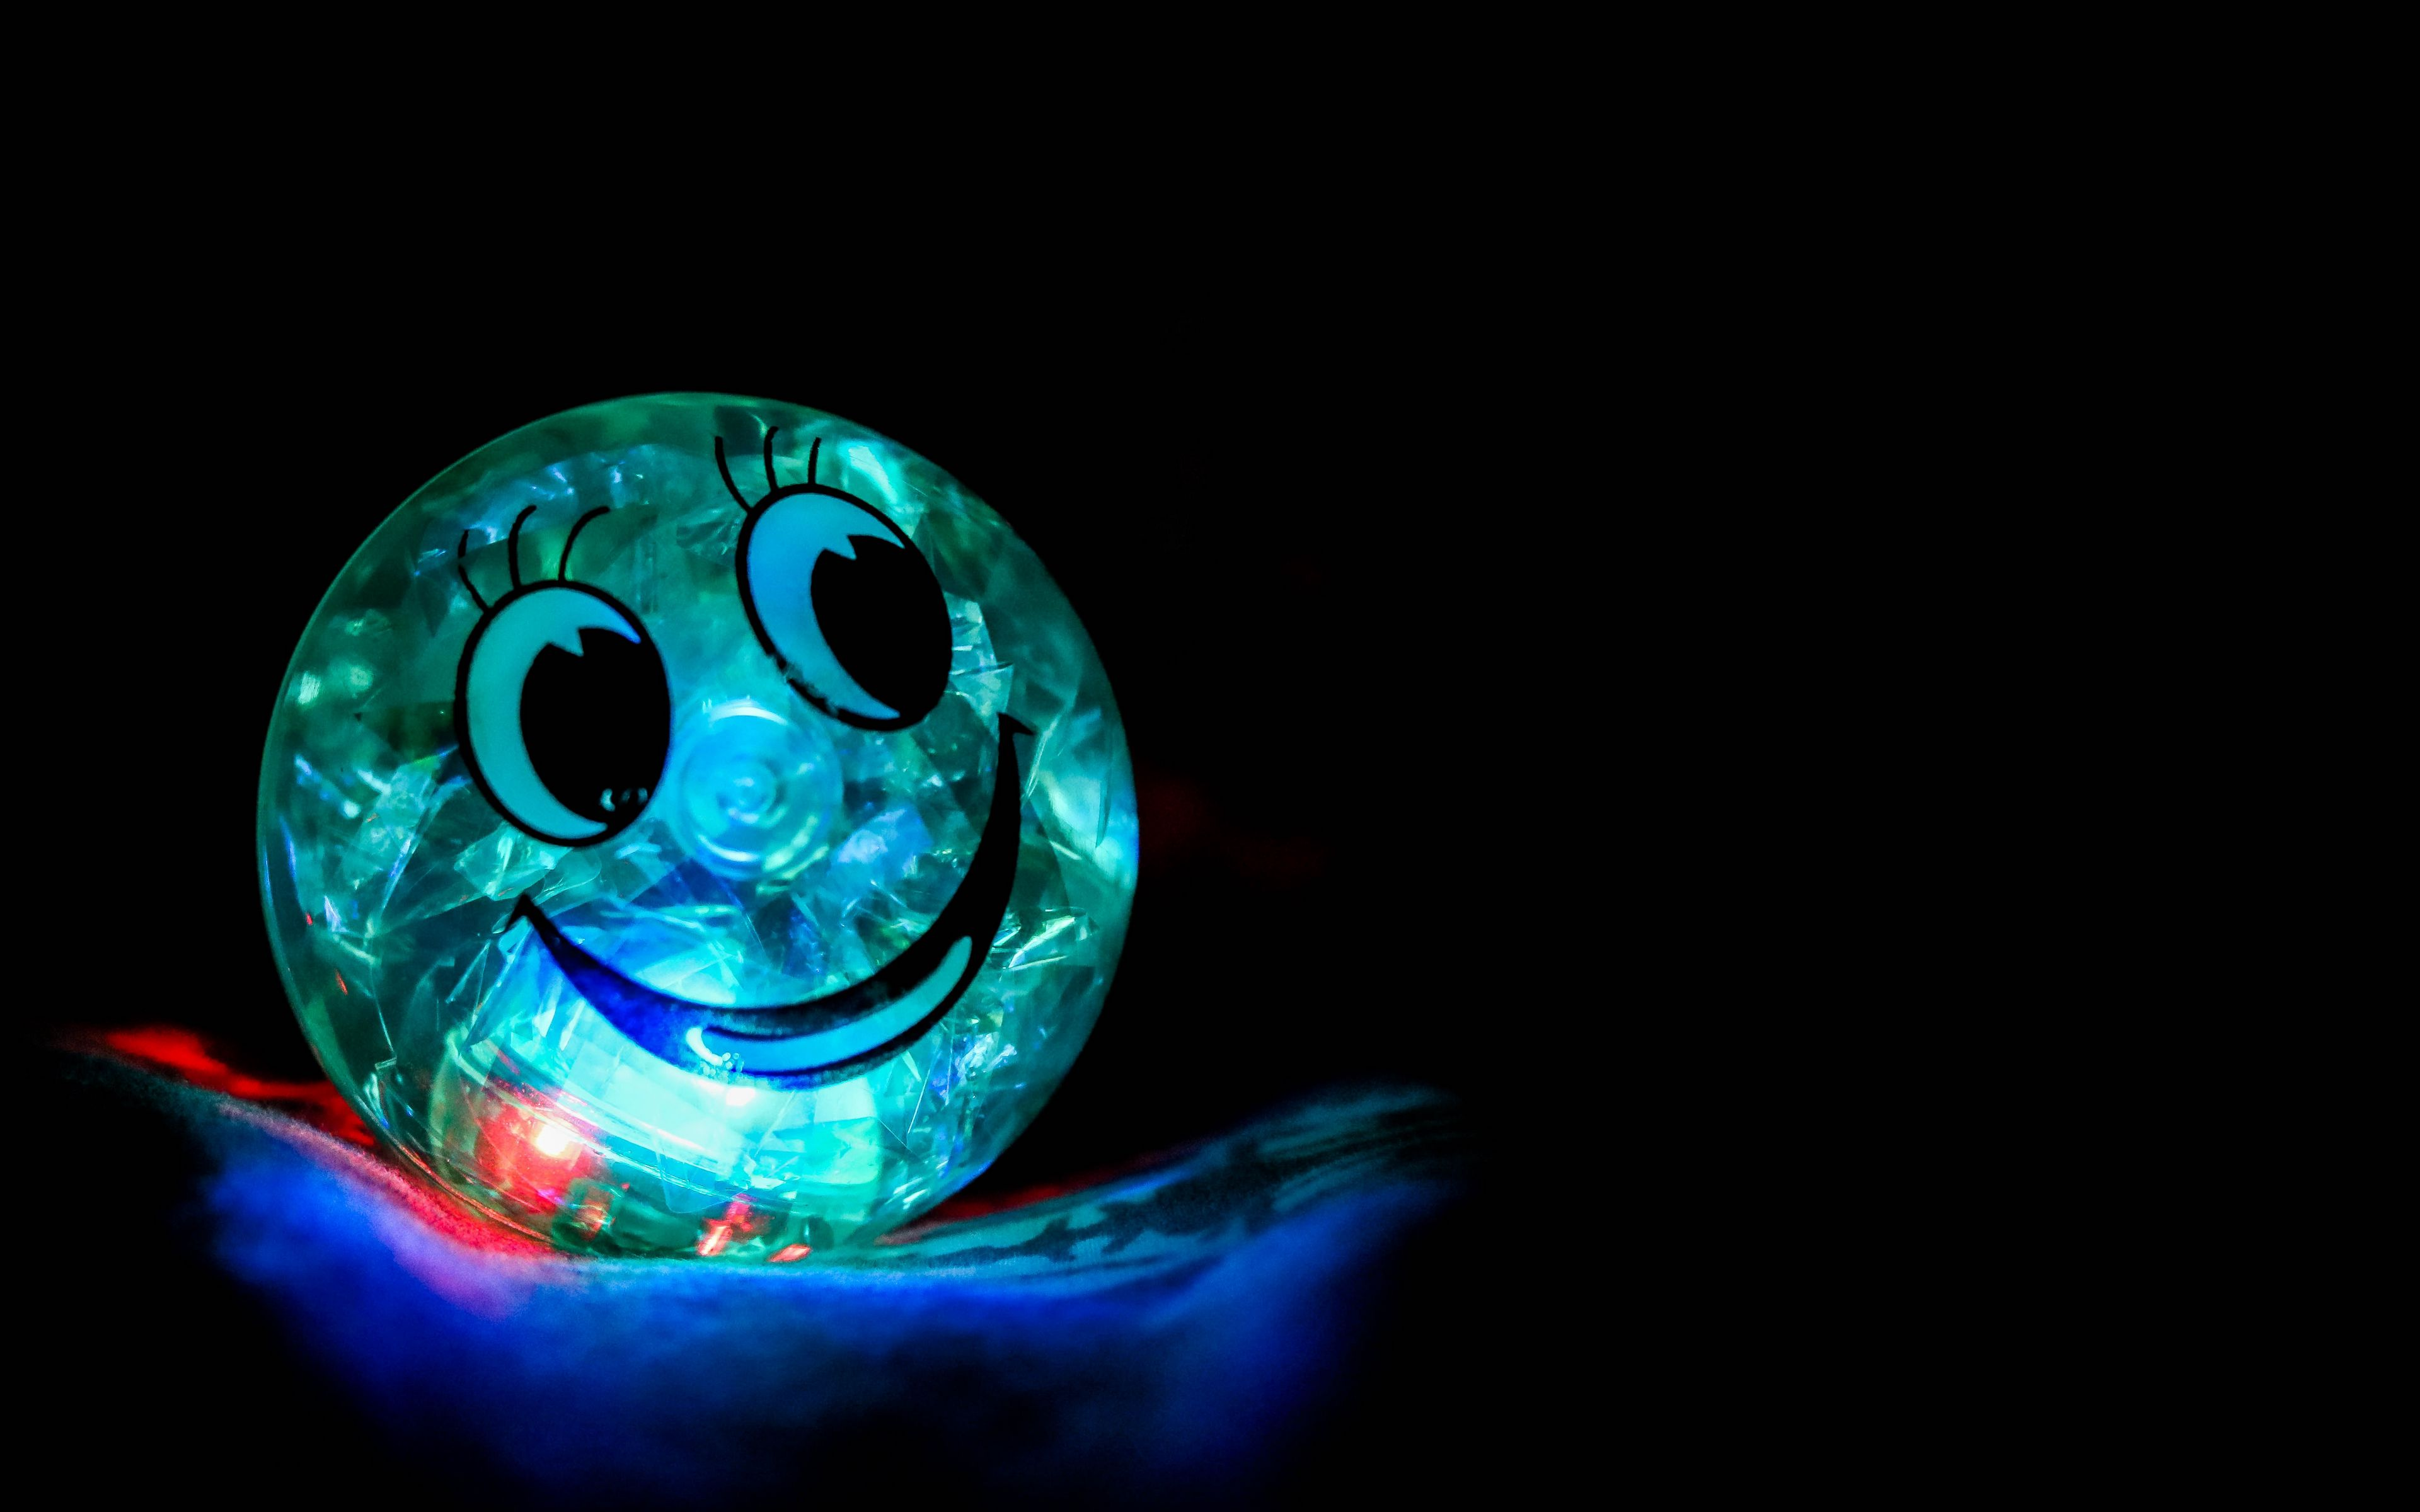 3840x2400 Wallpaper smile, happiness, ball, backlight